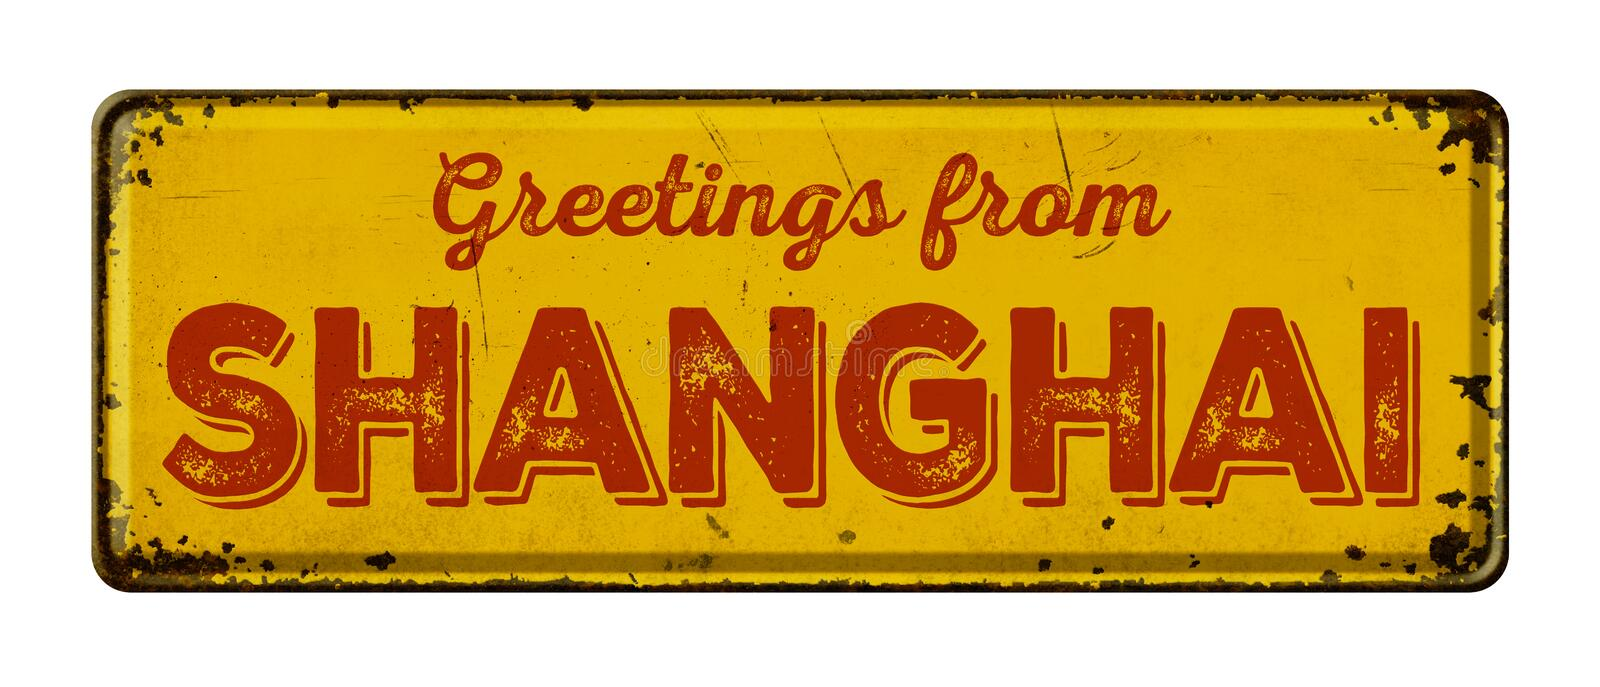 Greetings from Shangh. Vintage metal sign on a white background - Greetings from Shanghai royalty free stock photos